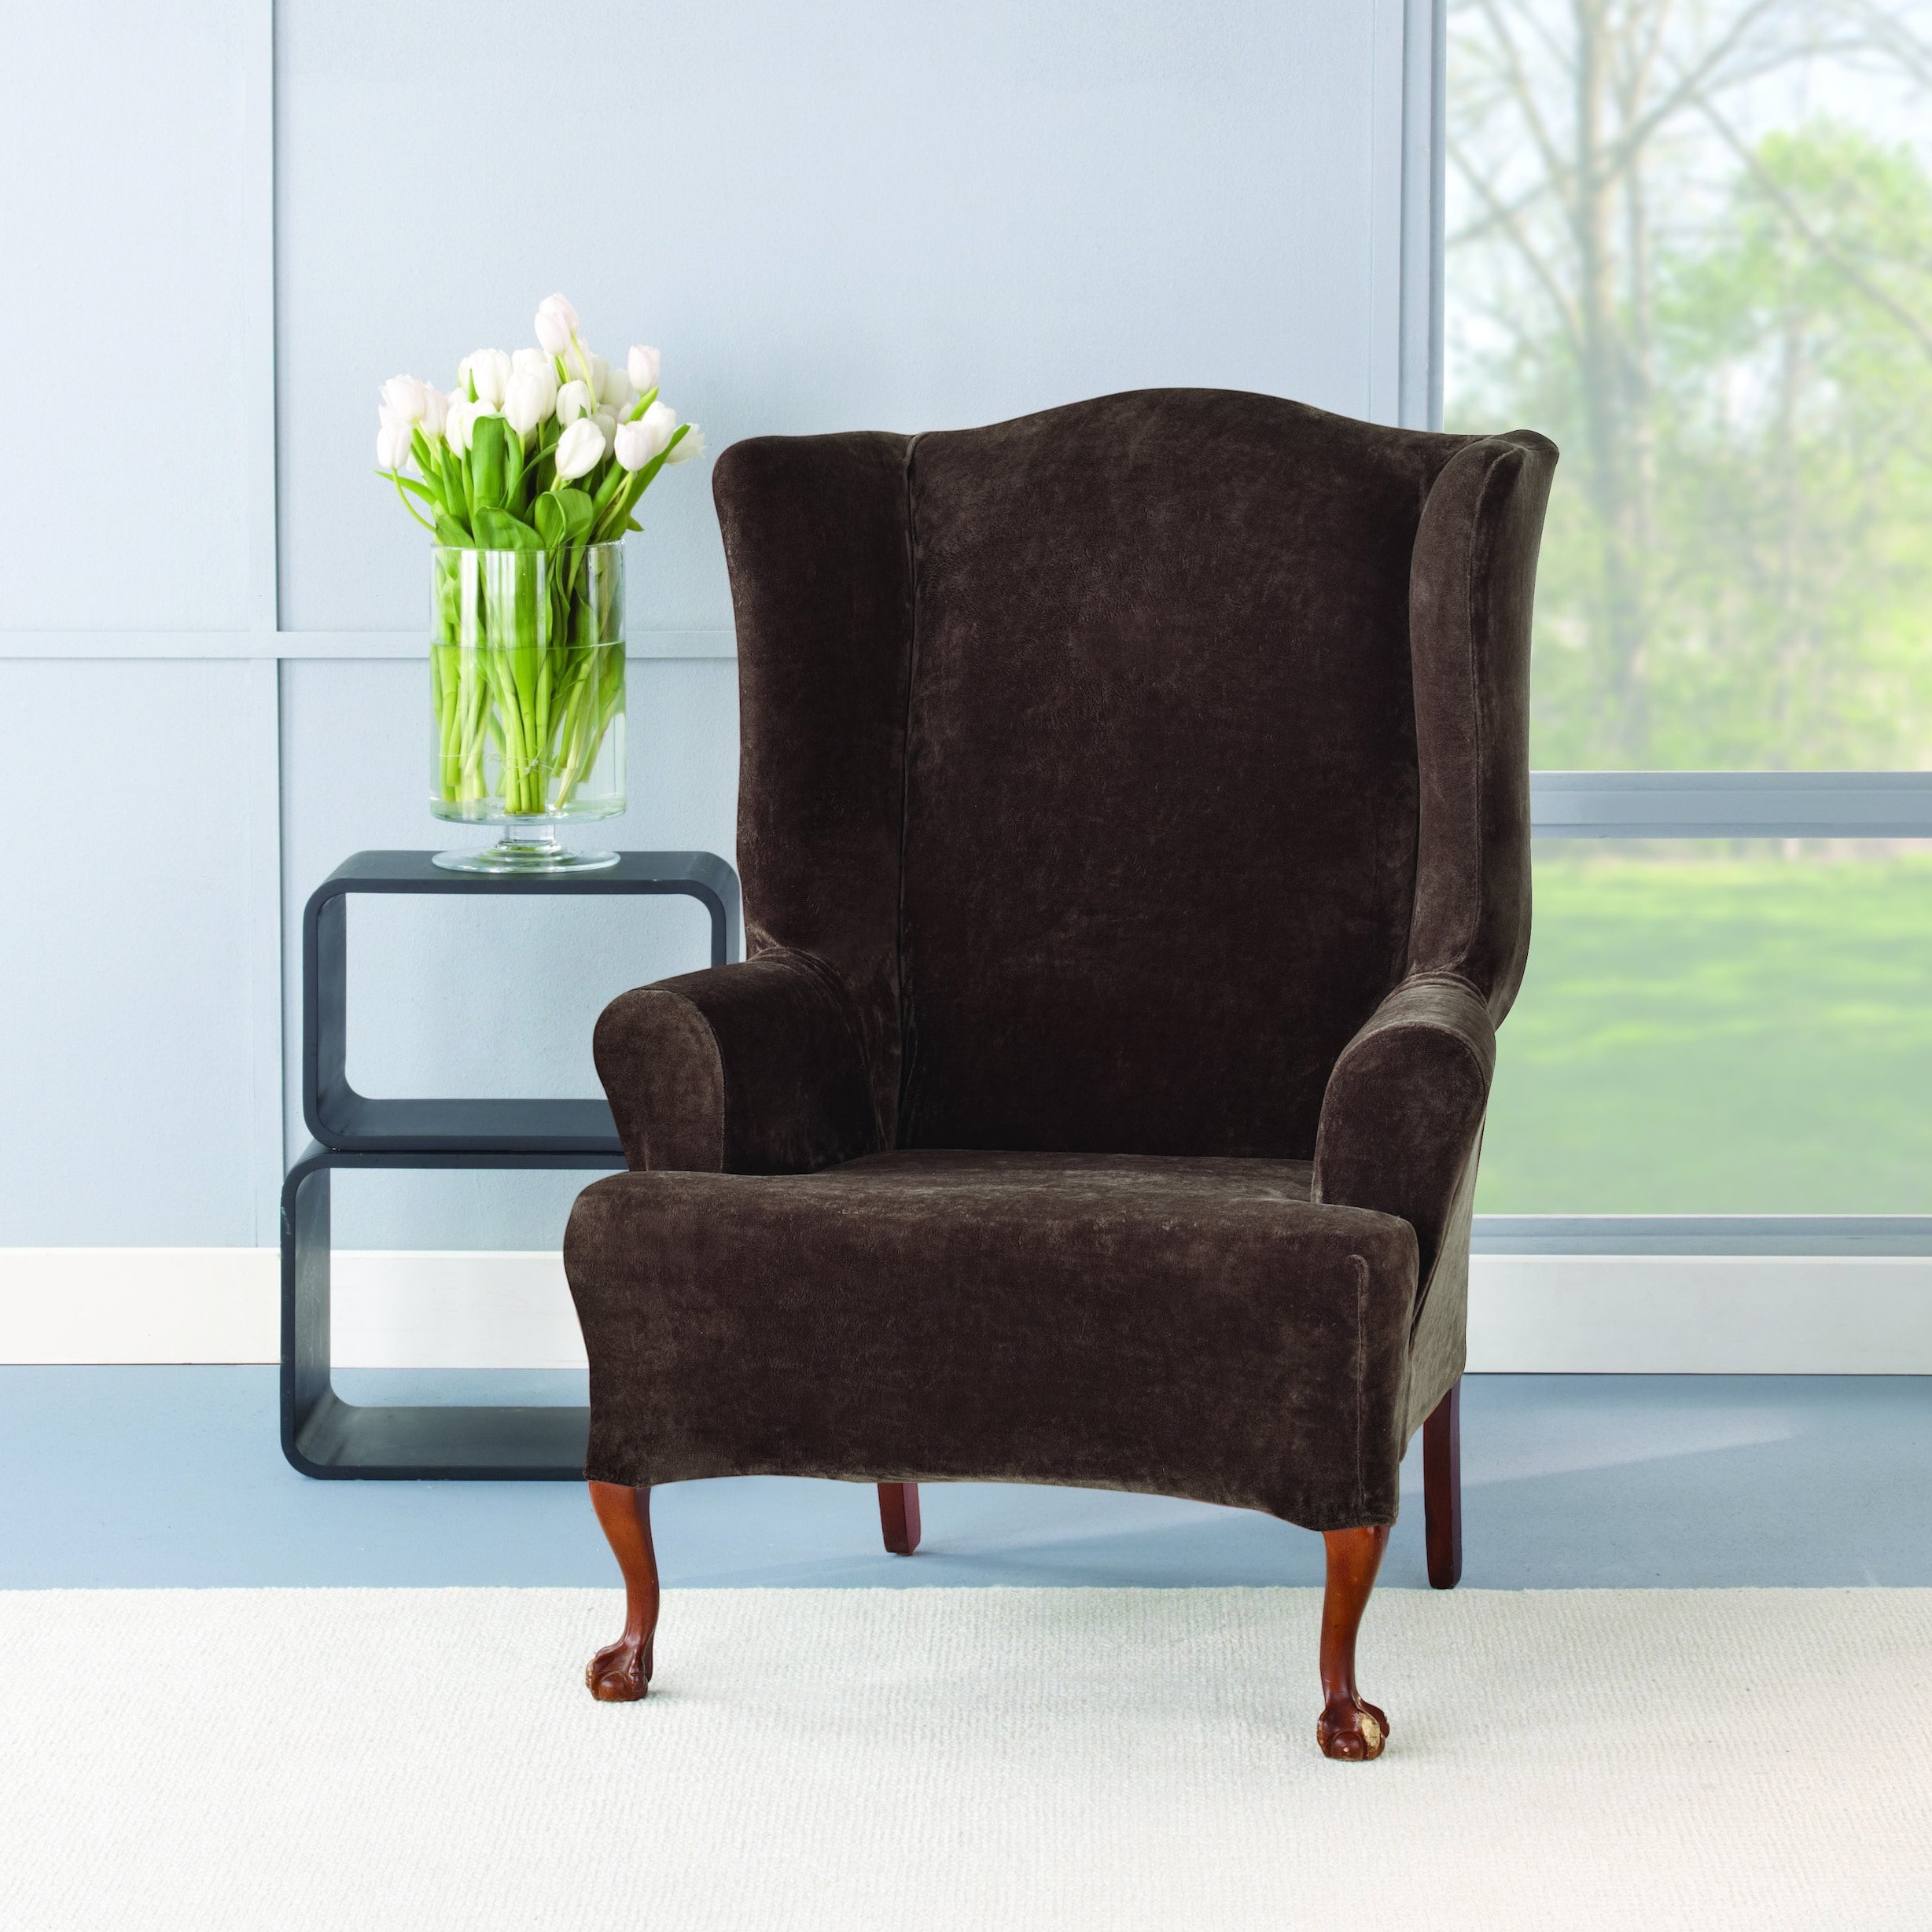 Astounding Sure Fit Stretch Plush Chocolate Wing Chair Slipcover Machost Co Dining Chair Design Ideas Machostcouk